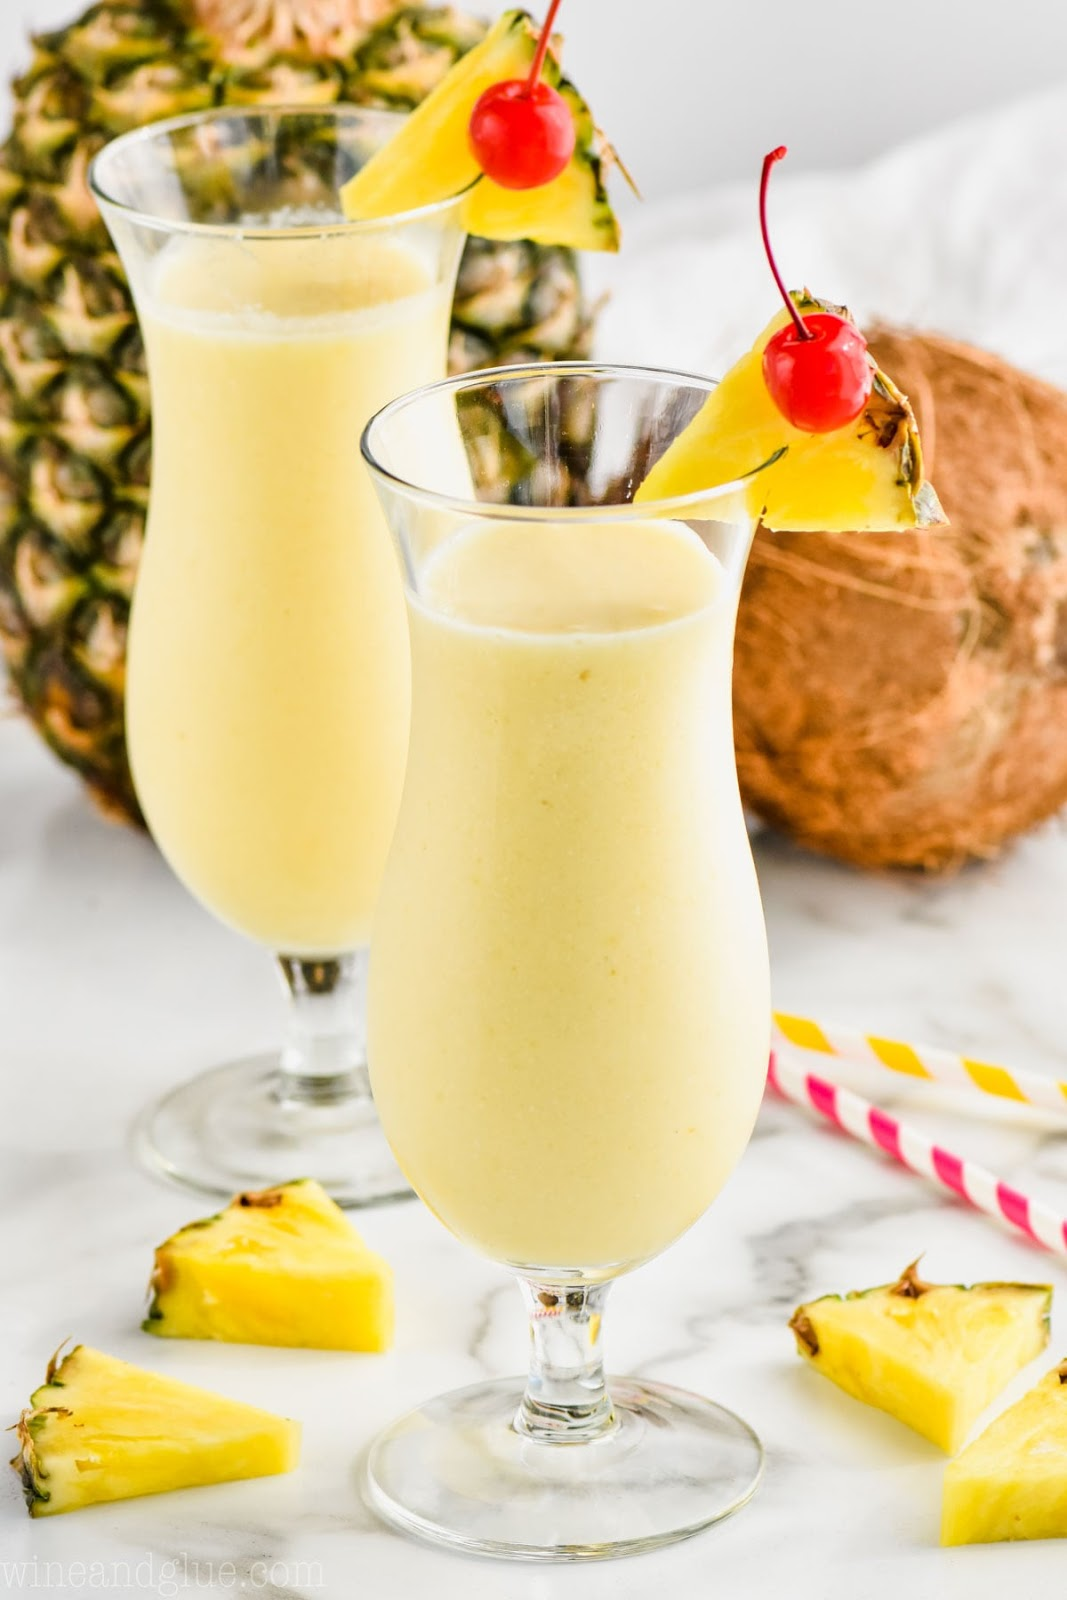 Pina Colada #drink #smoothie #cocktail #party #yummy